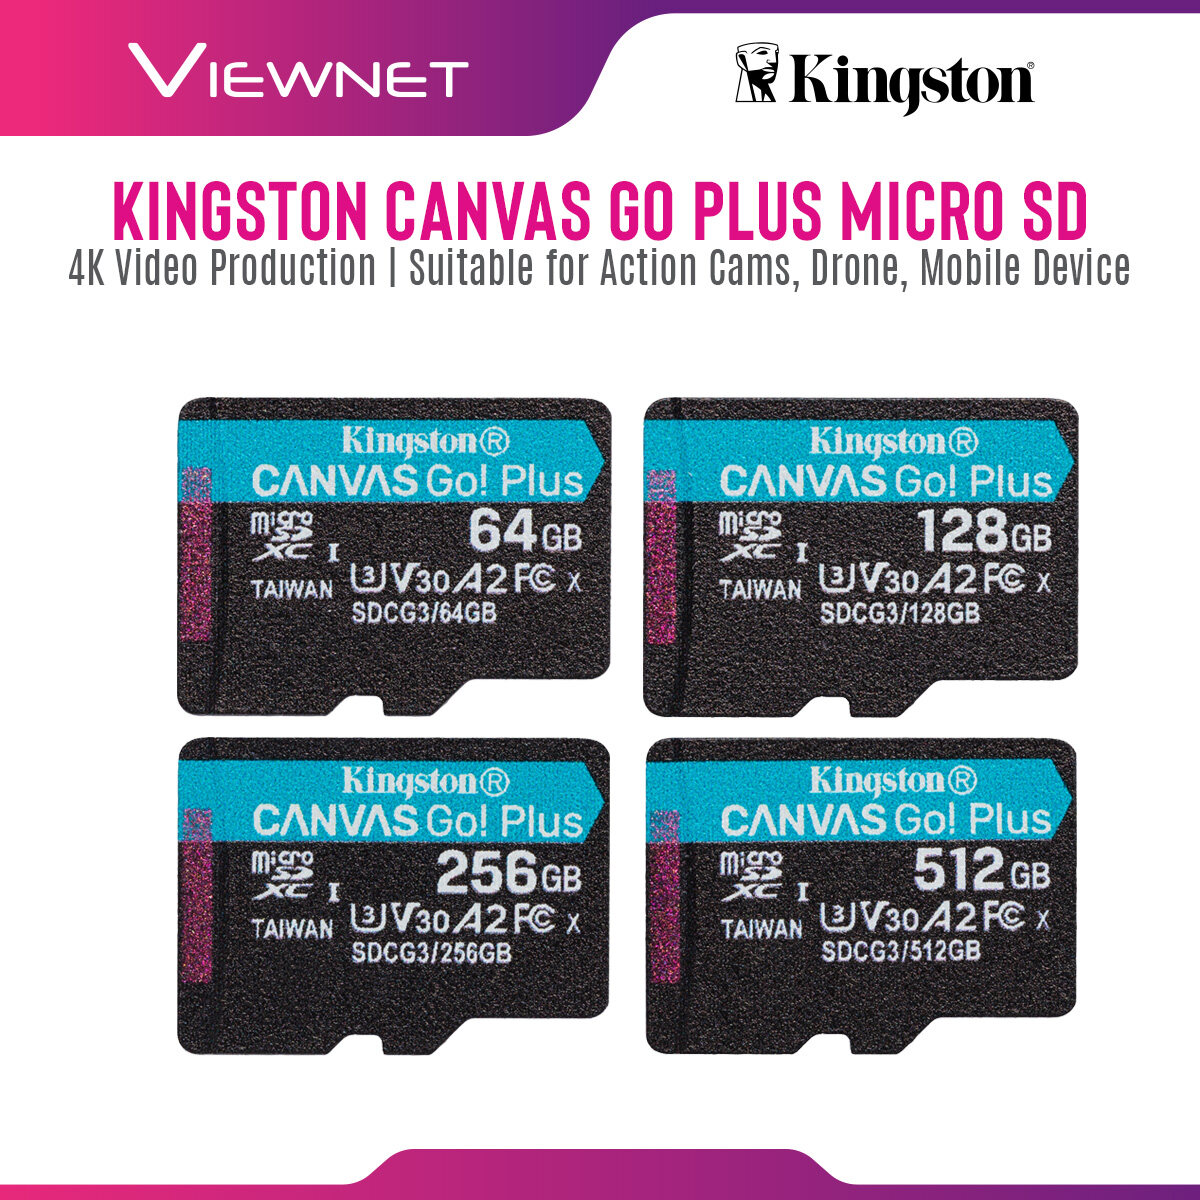 Kingston Canvas Go Plus Micro SD SDCG3 Series (64GB / 128GB / 256GB / 512GB) with 4K Video Production, Suitable for Action Cams, Drones and Mobile Device